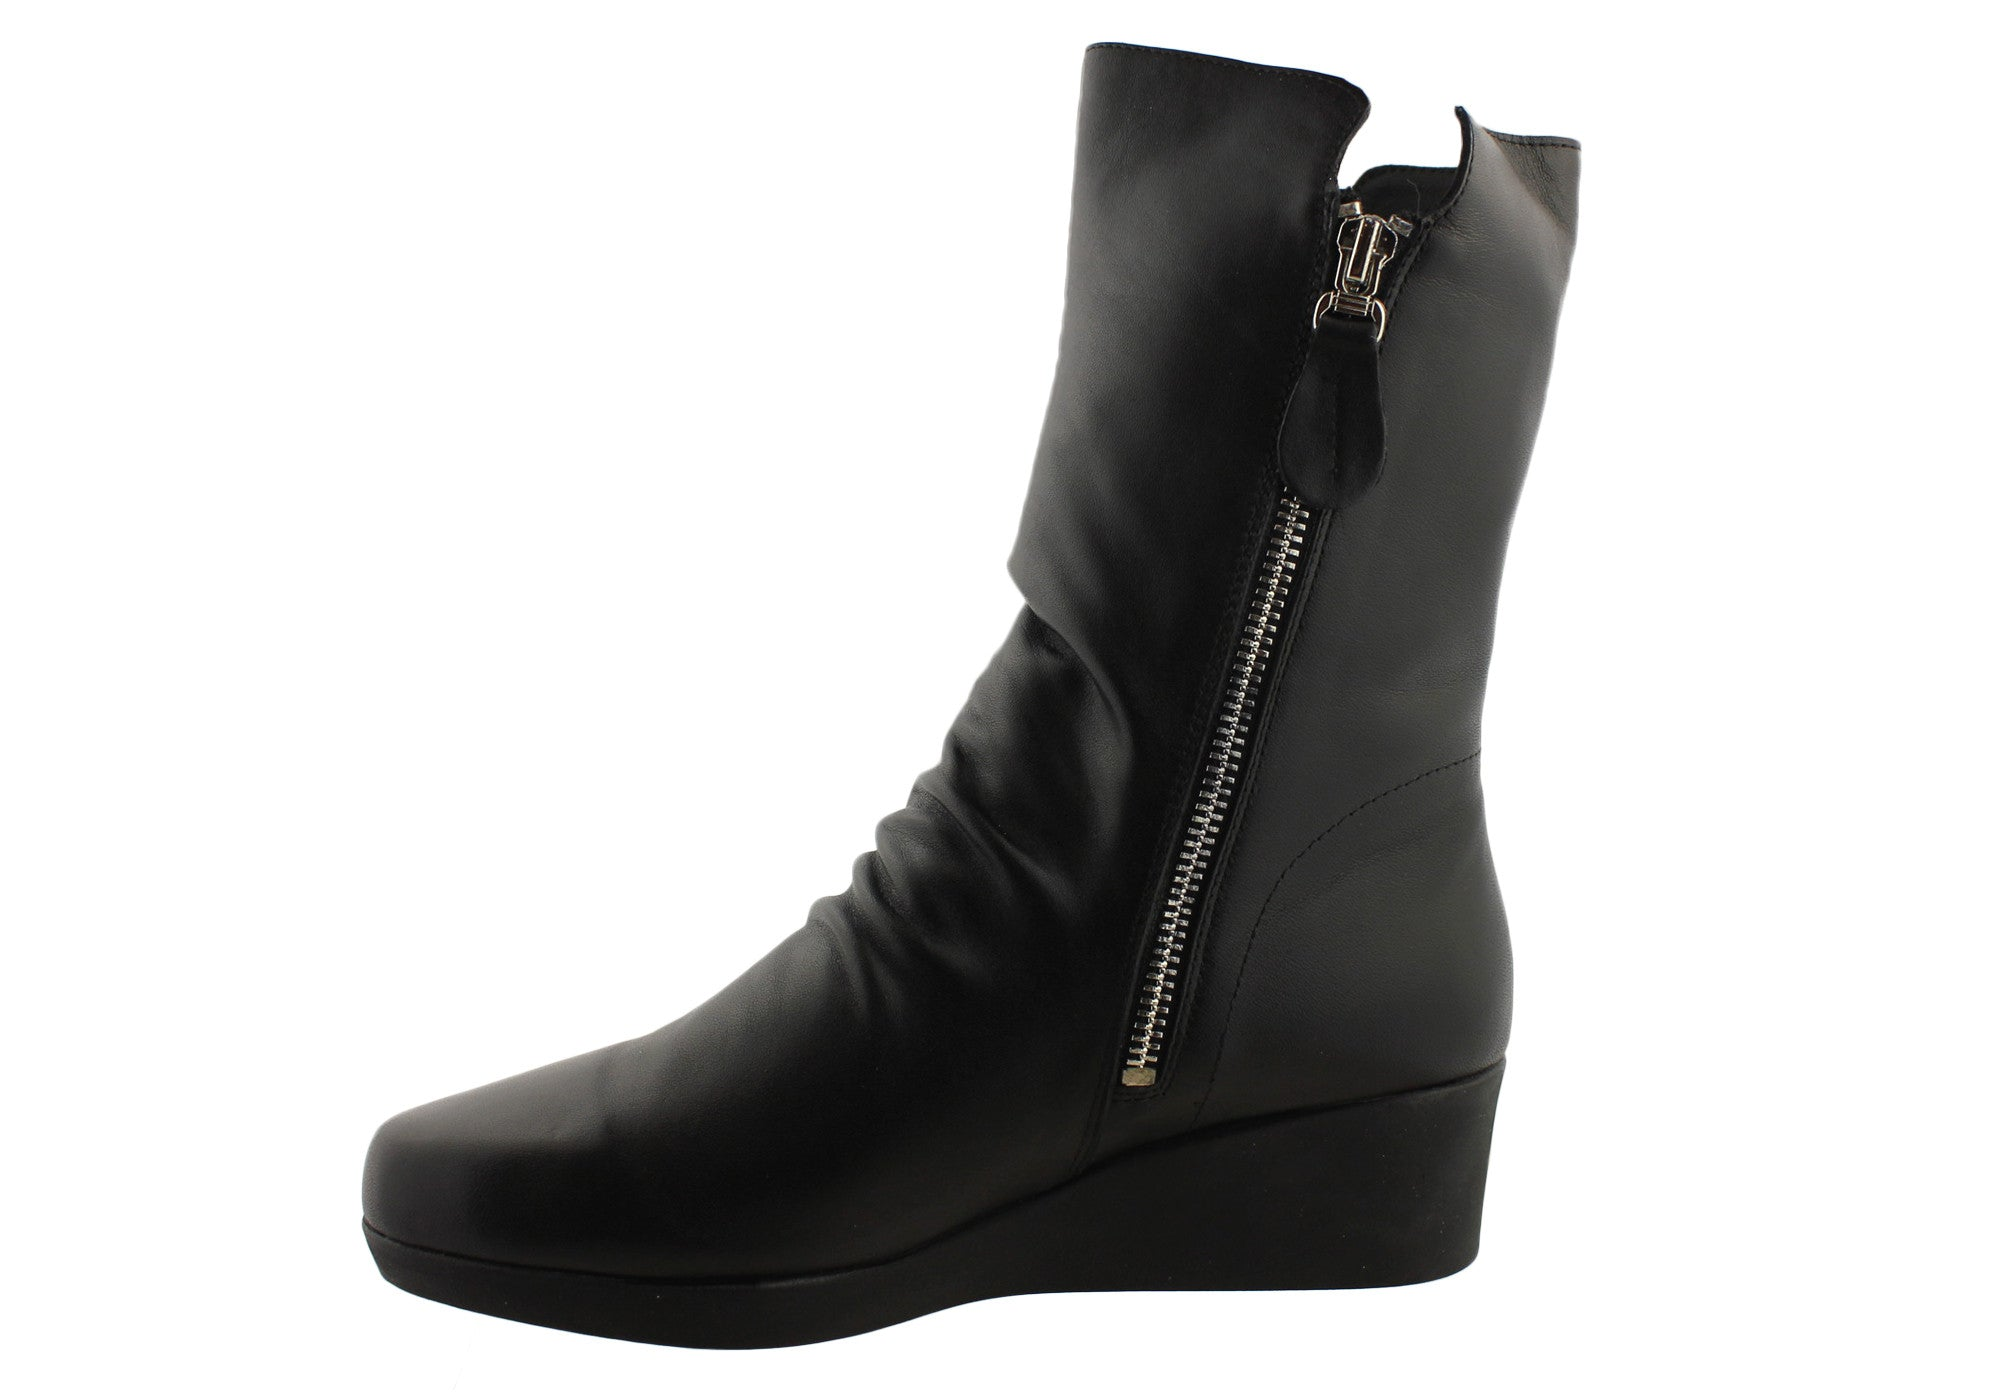 Magnini Lipton Womens Leather Boots